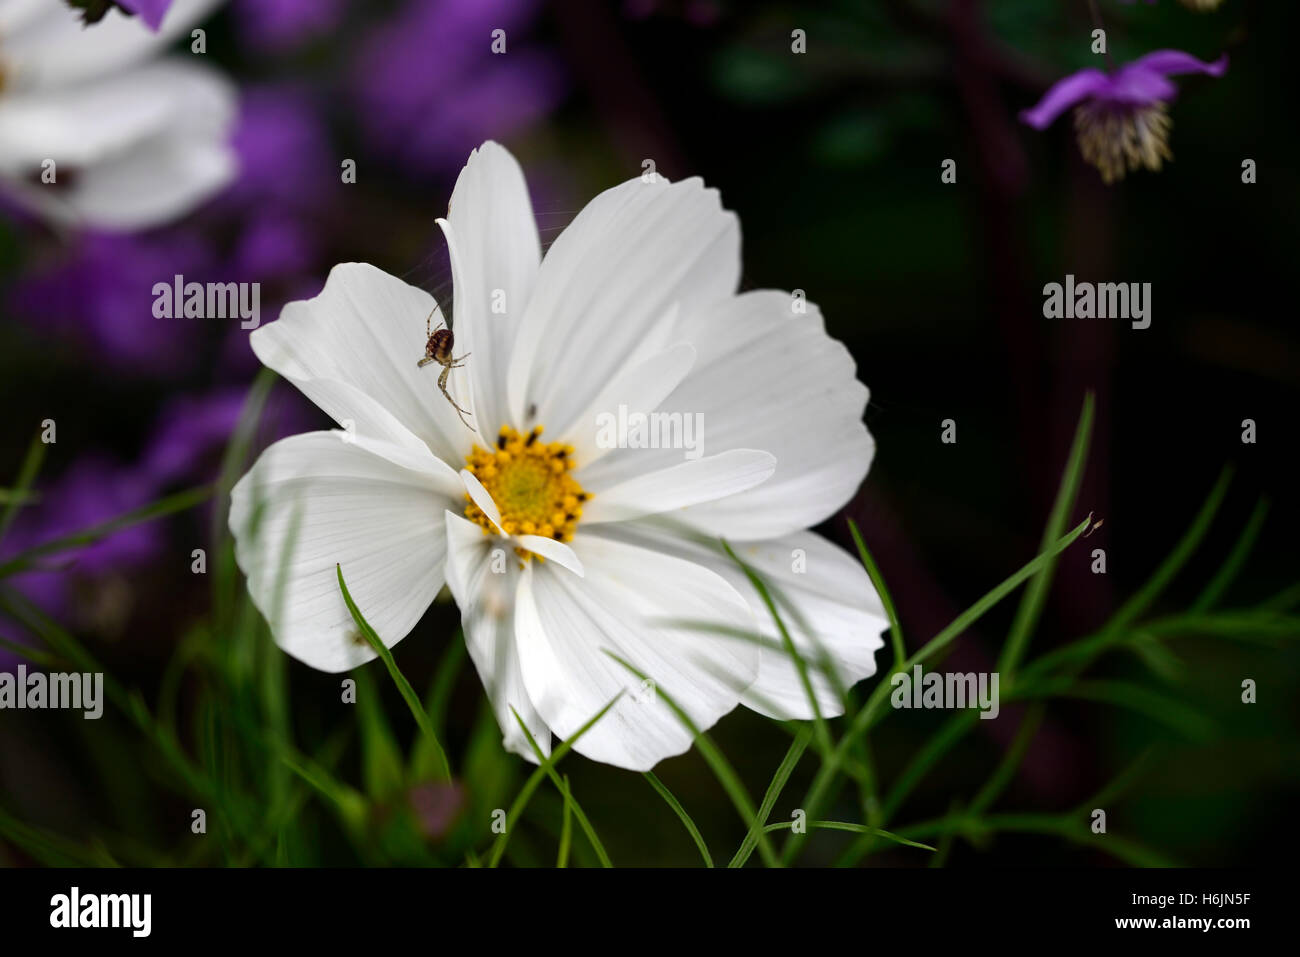 Cosmos purity flower white immagini cosmos purity flower white